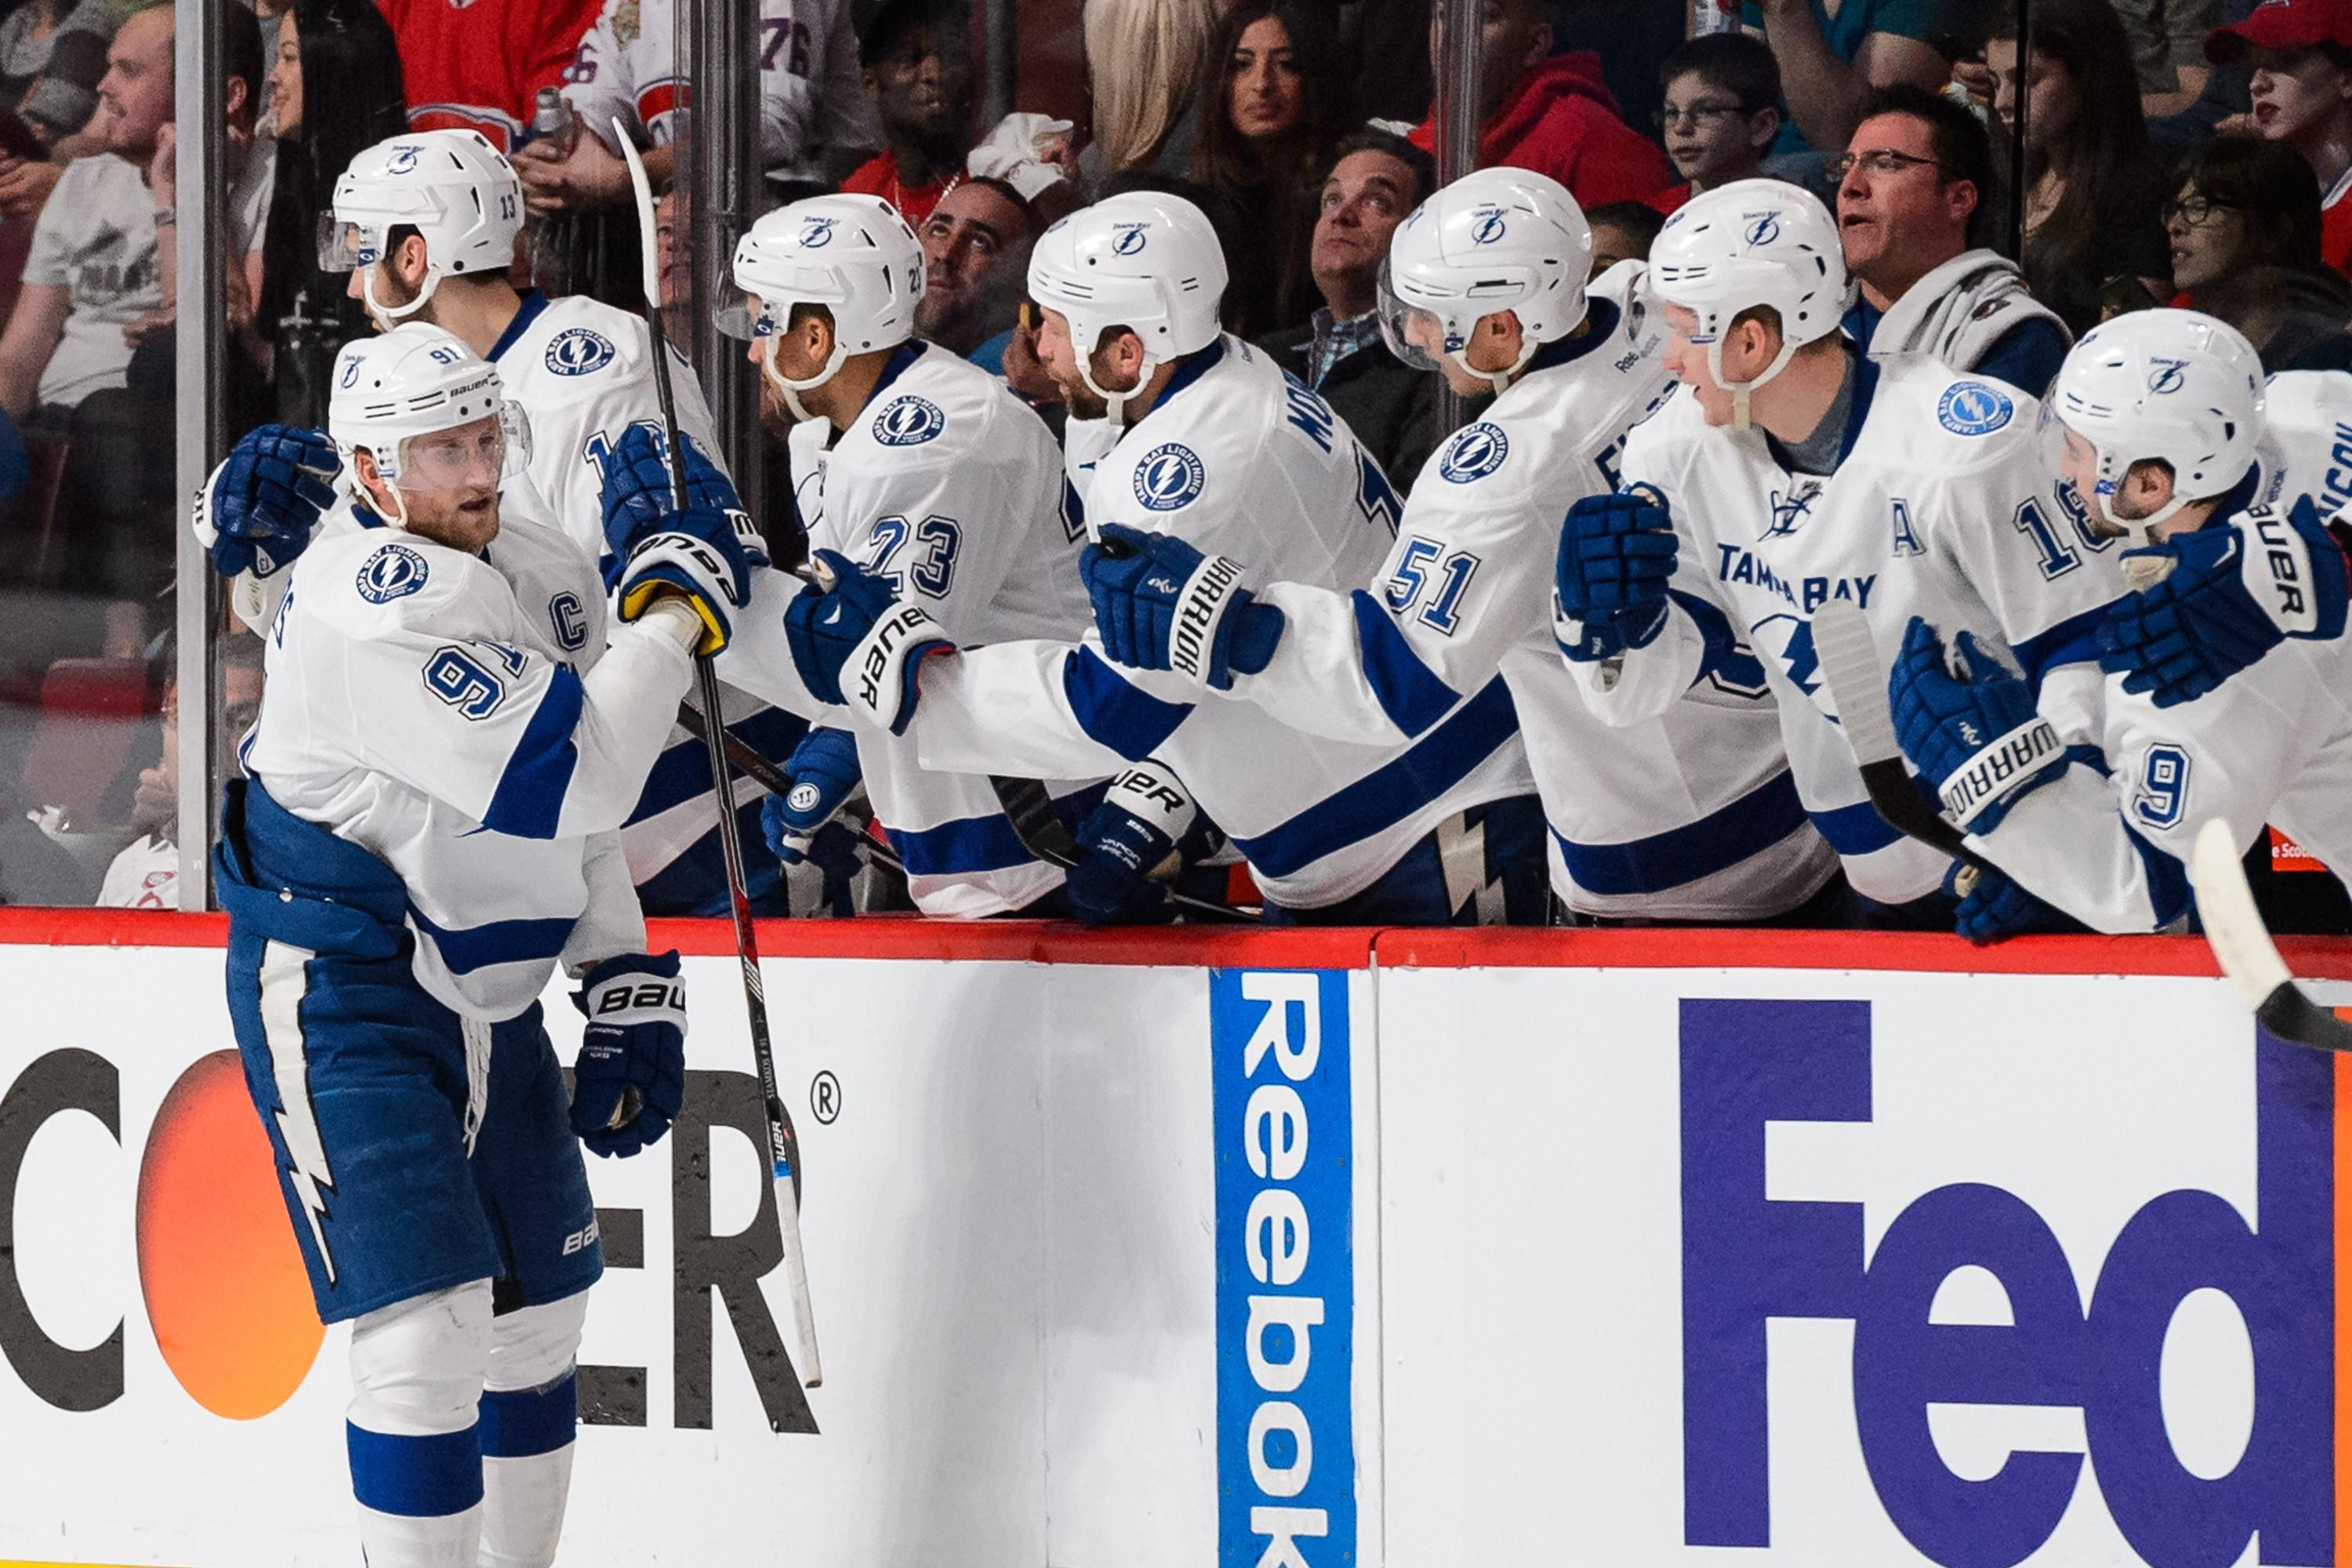 Steven Stamkos breaks through in Tampa Game 2 drubbing over Montreal (Video)